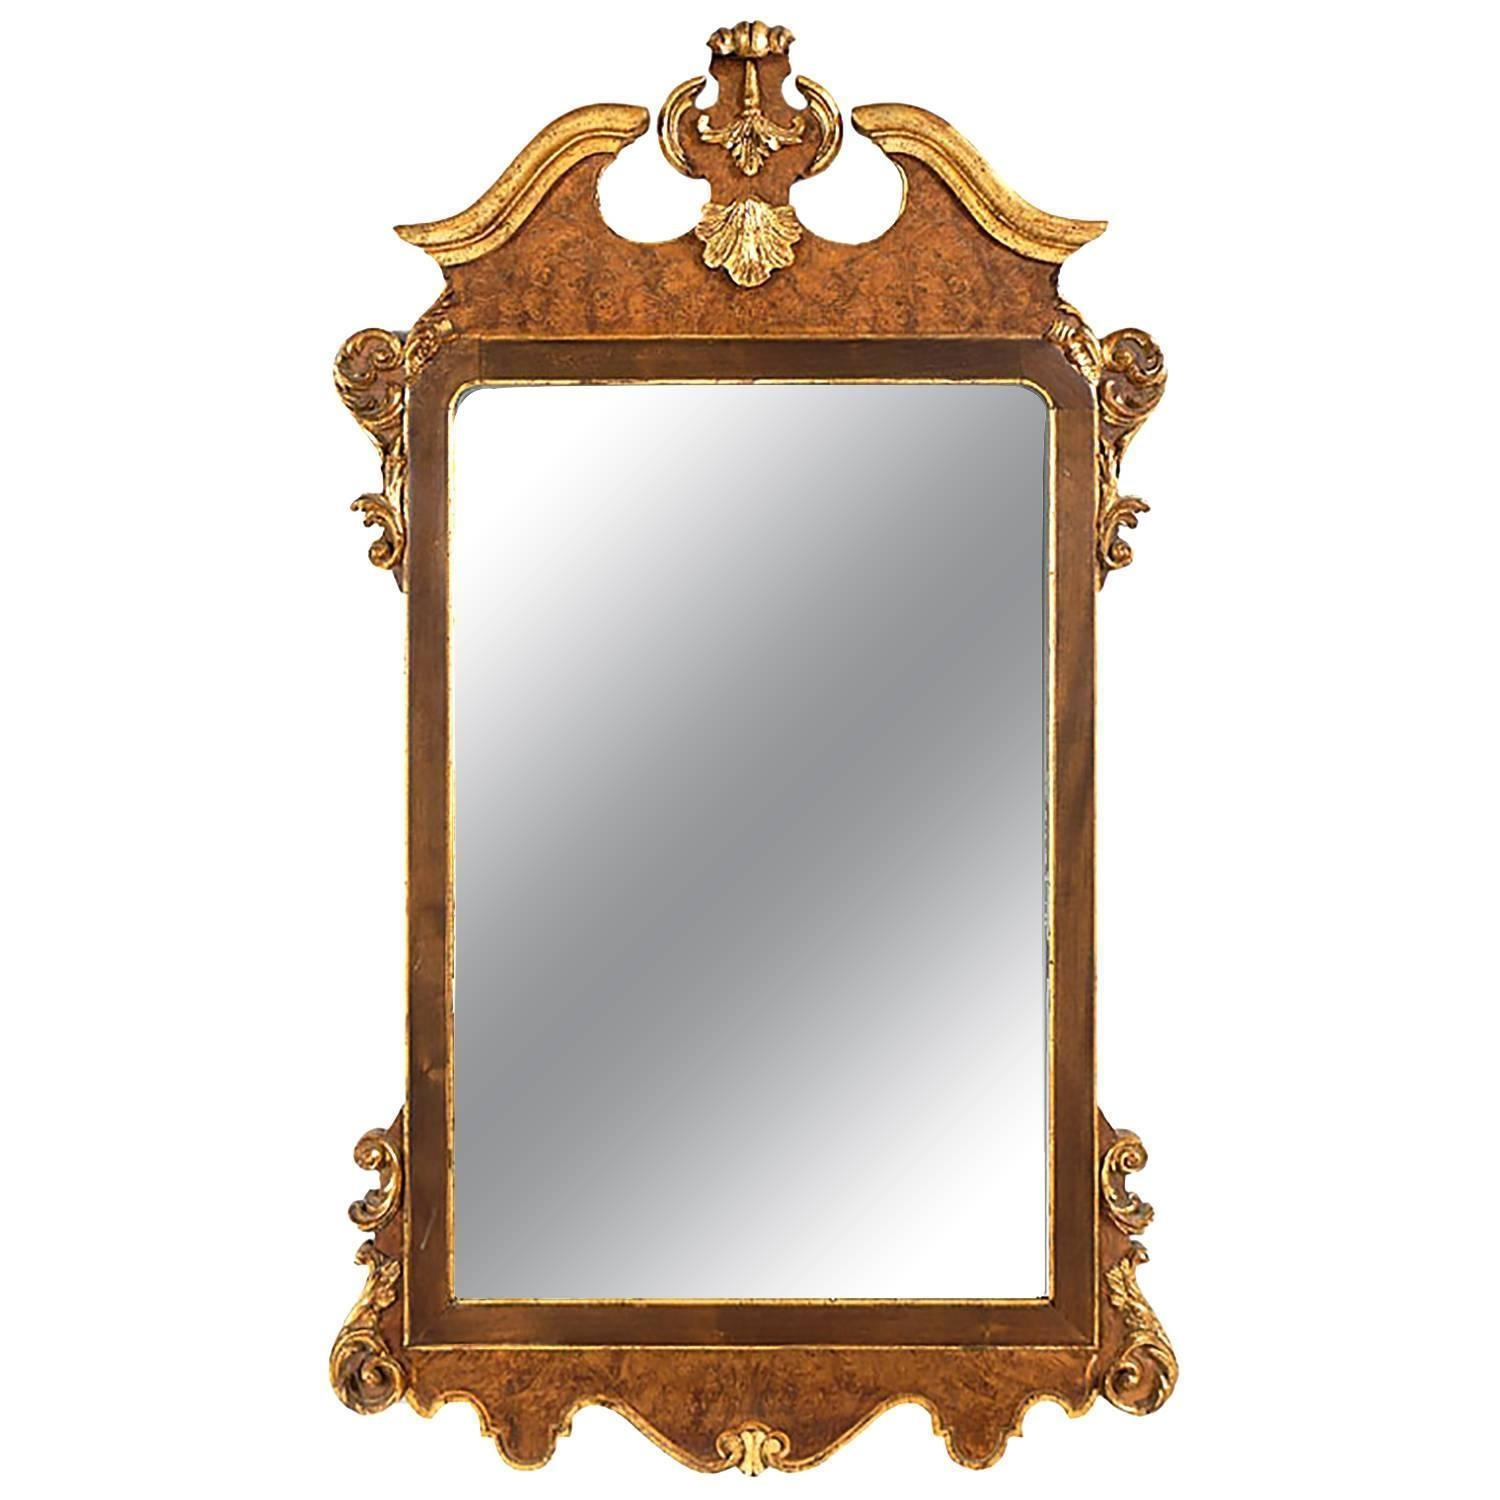 Gold Gilt Italian Mirror Attributed To La Barge For Sale At 1Stdibs Inside Gold Gilt Mirror (Image 8 of 20)